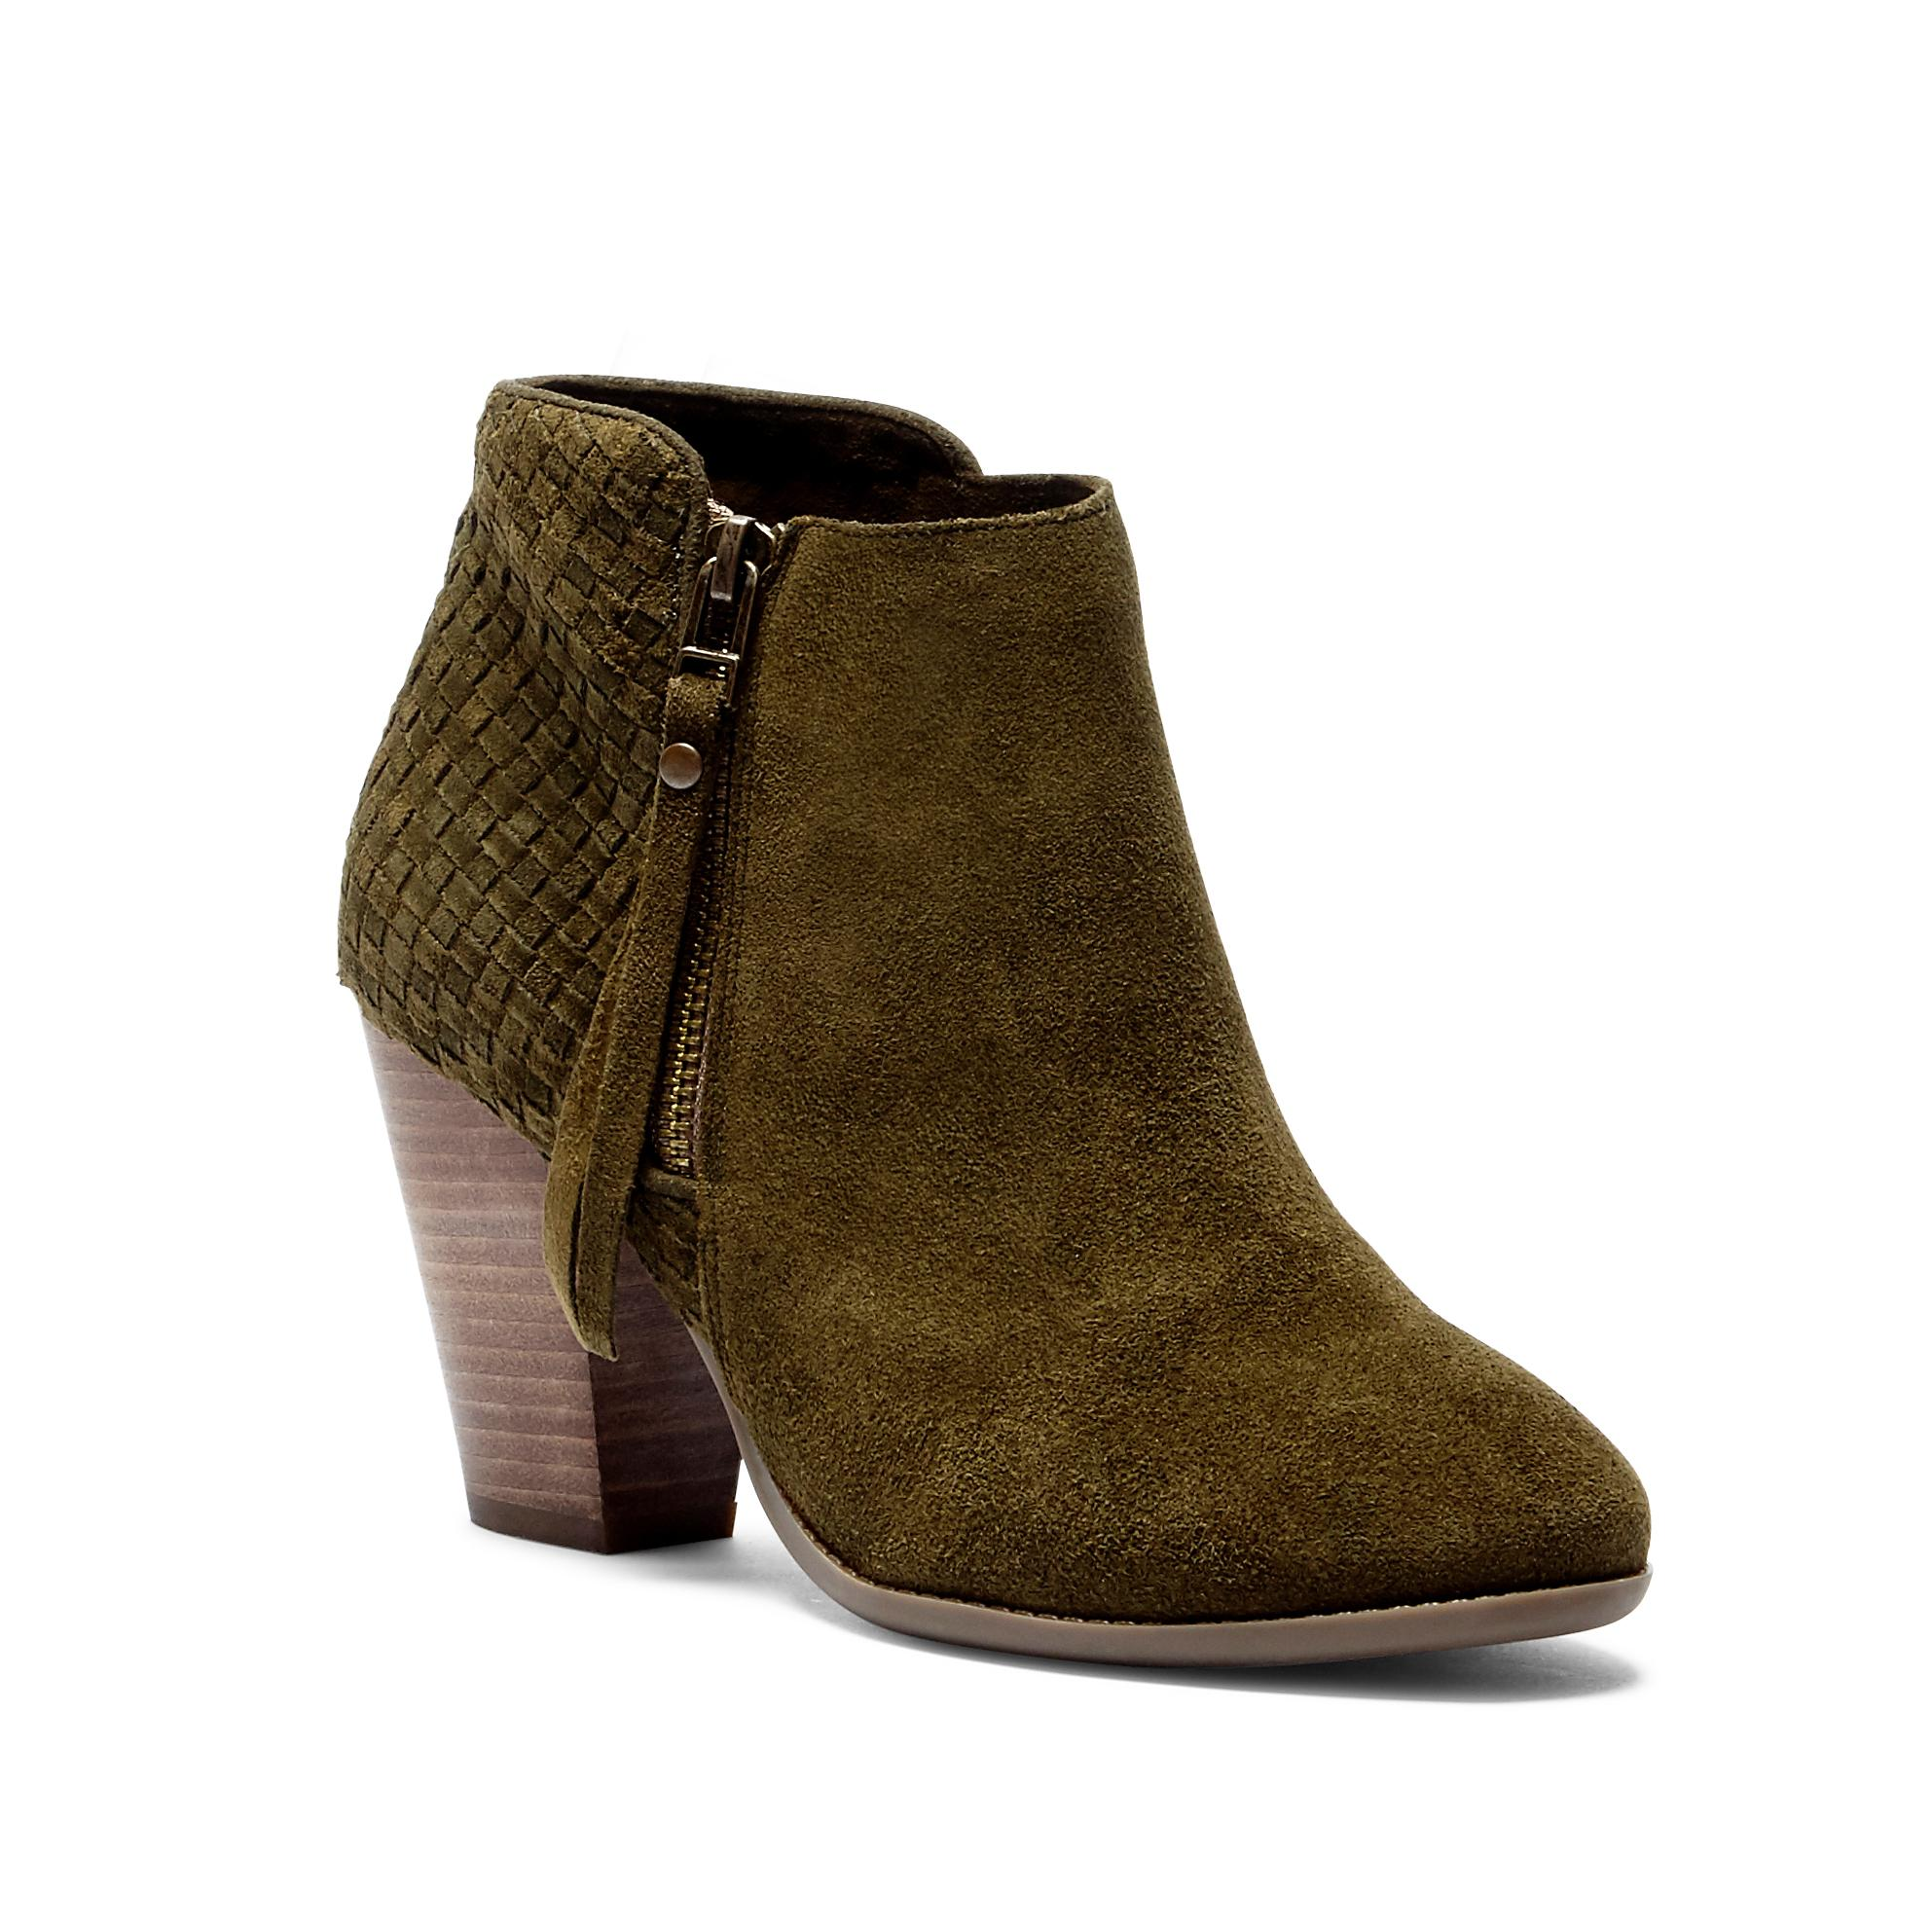 Sole Society Zada – on sale for $49.98 // Solesociety.com (Photo courtesy: Sole Society)<p></p>